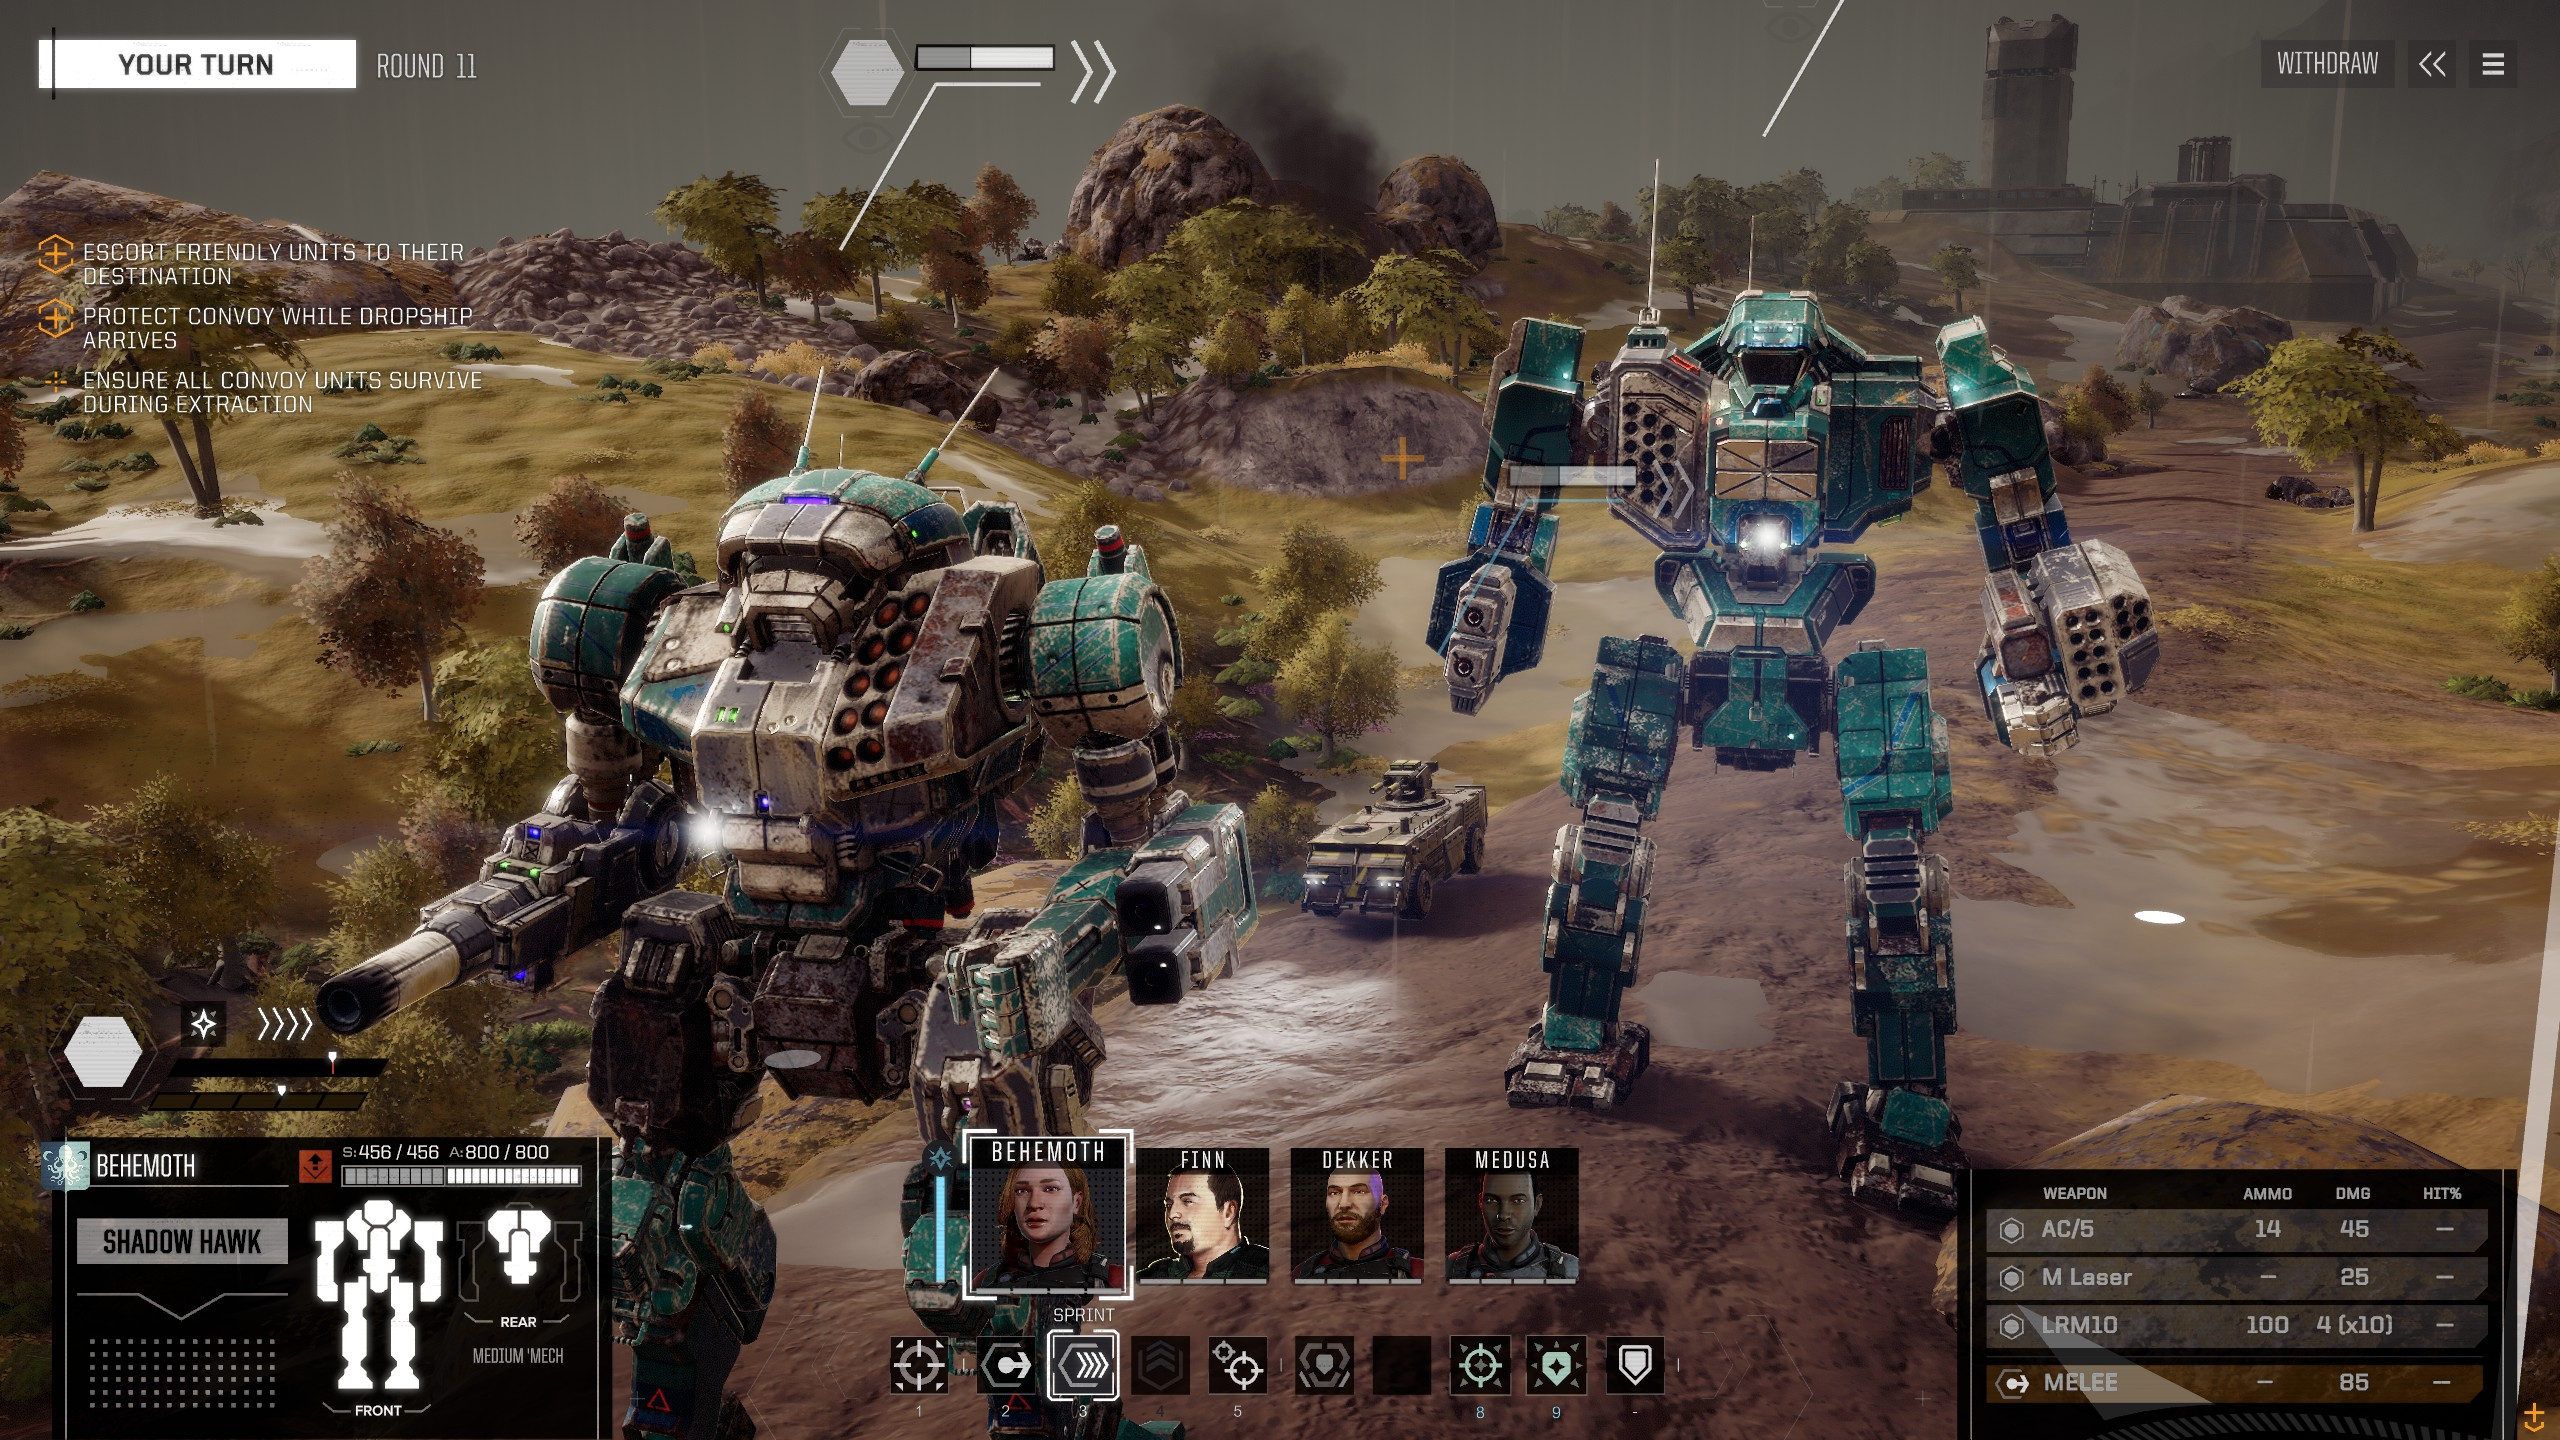 Big changes come to Battletech in the 1 10 update | PC Gamer